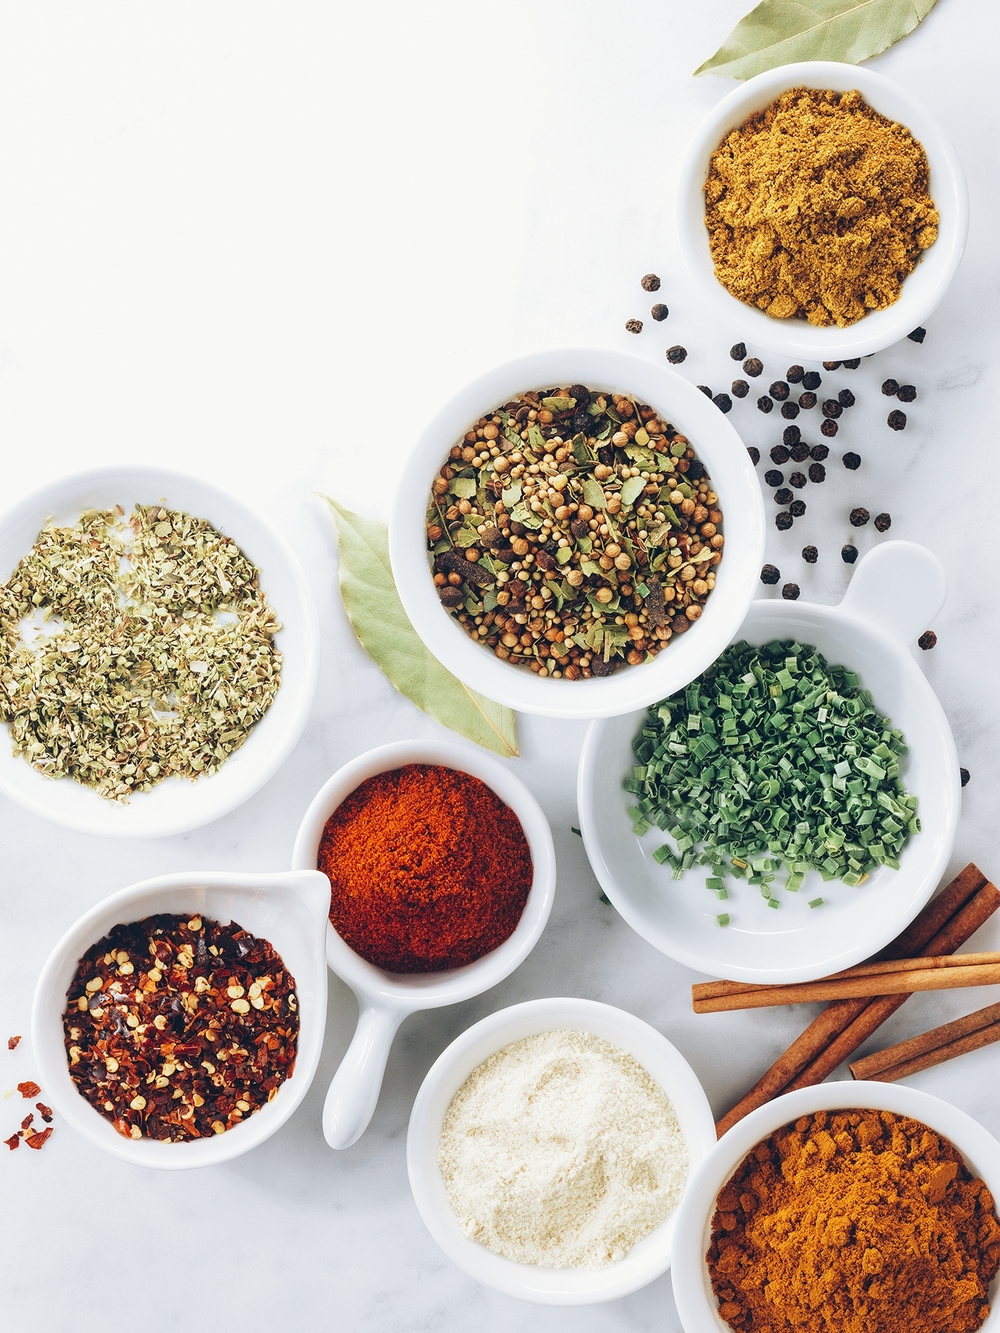 Herbs and Spices sobeys packaging